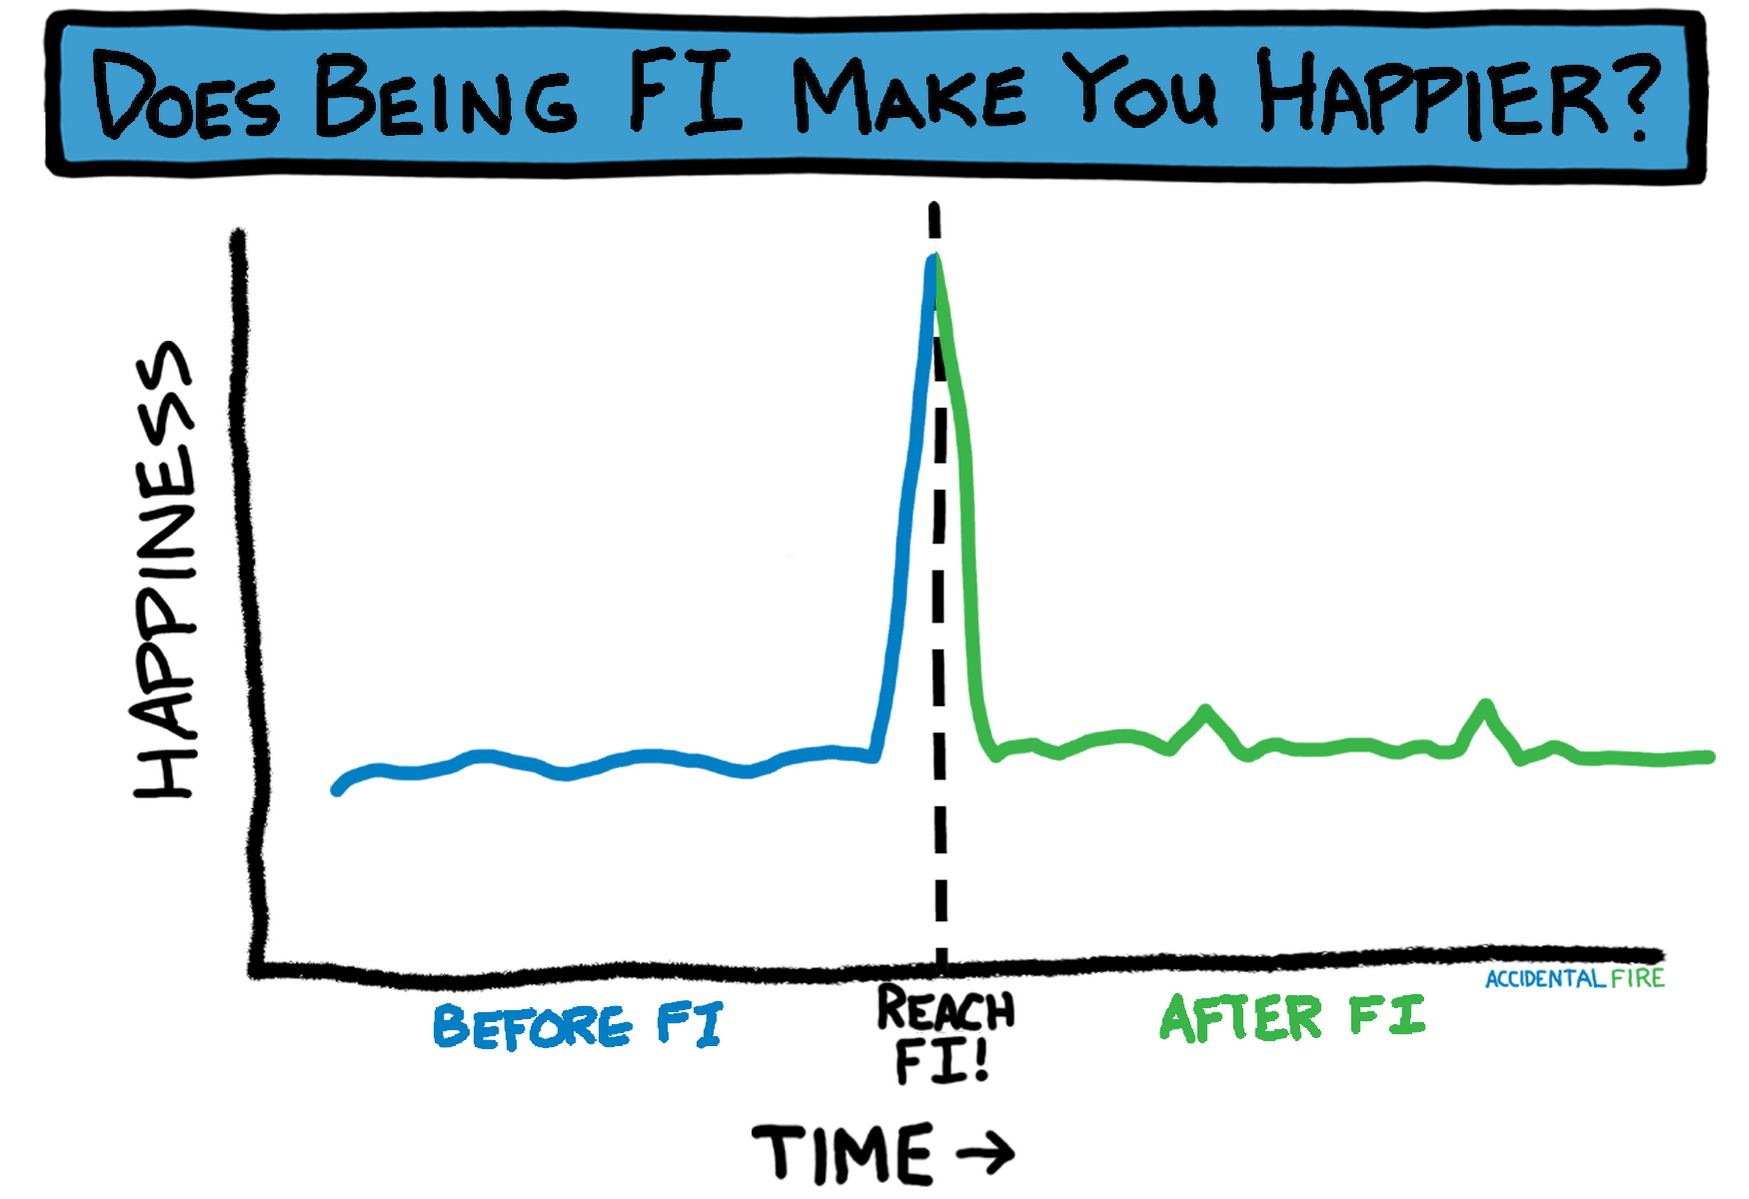 Does Being Financially Independent Make You Happier?